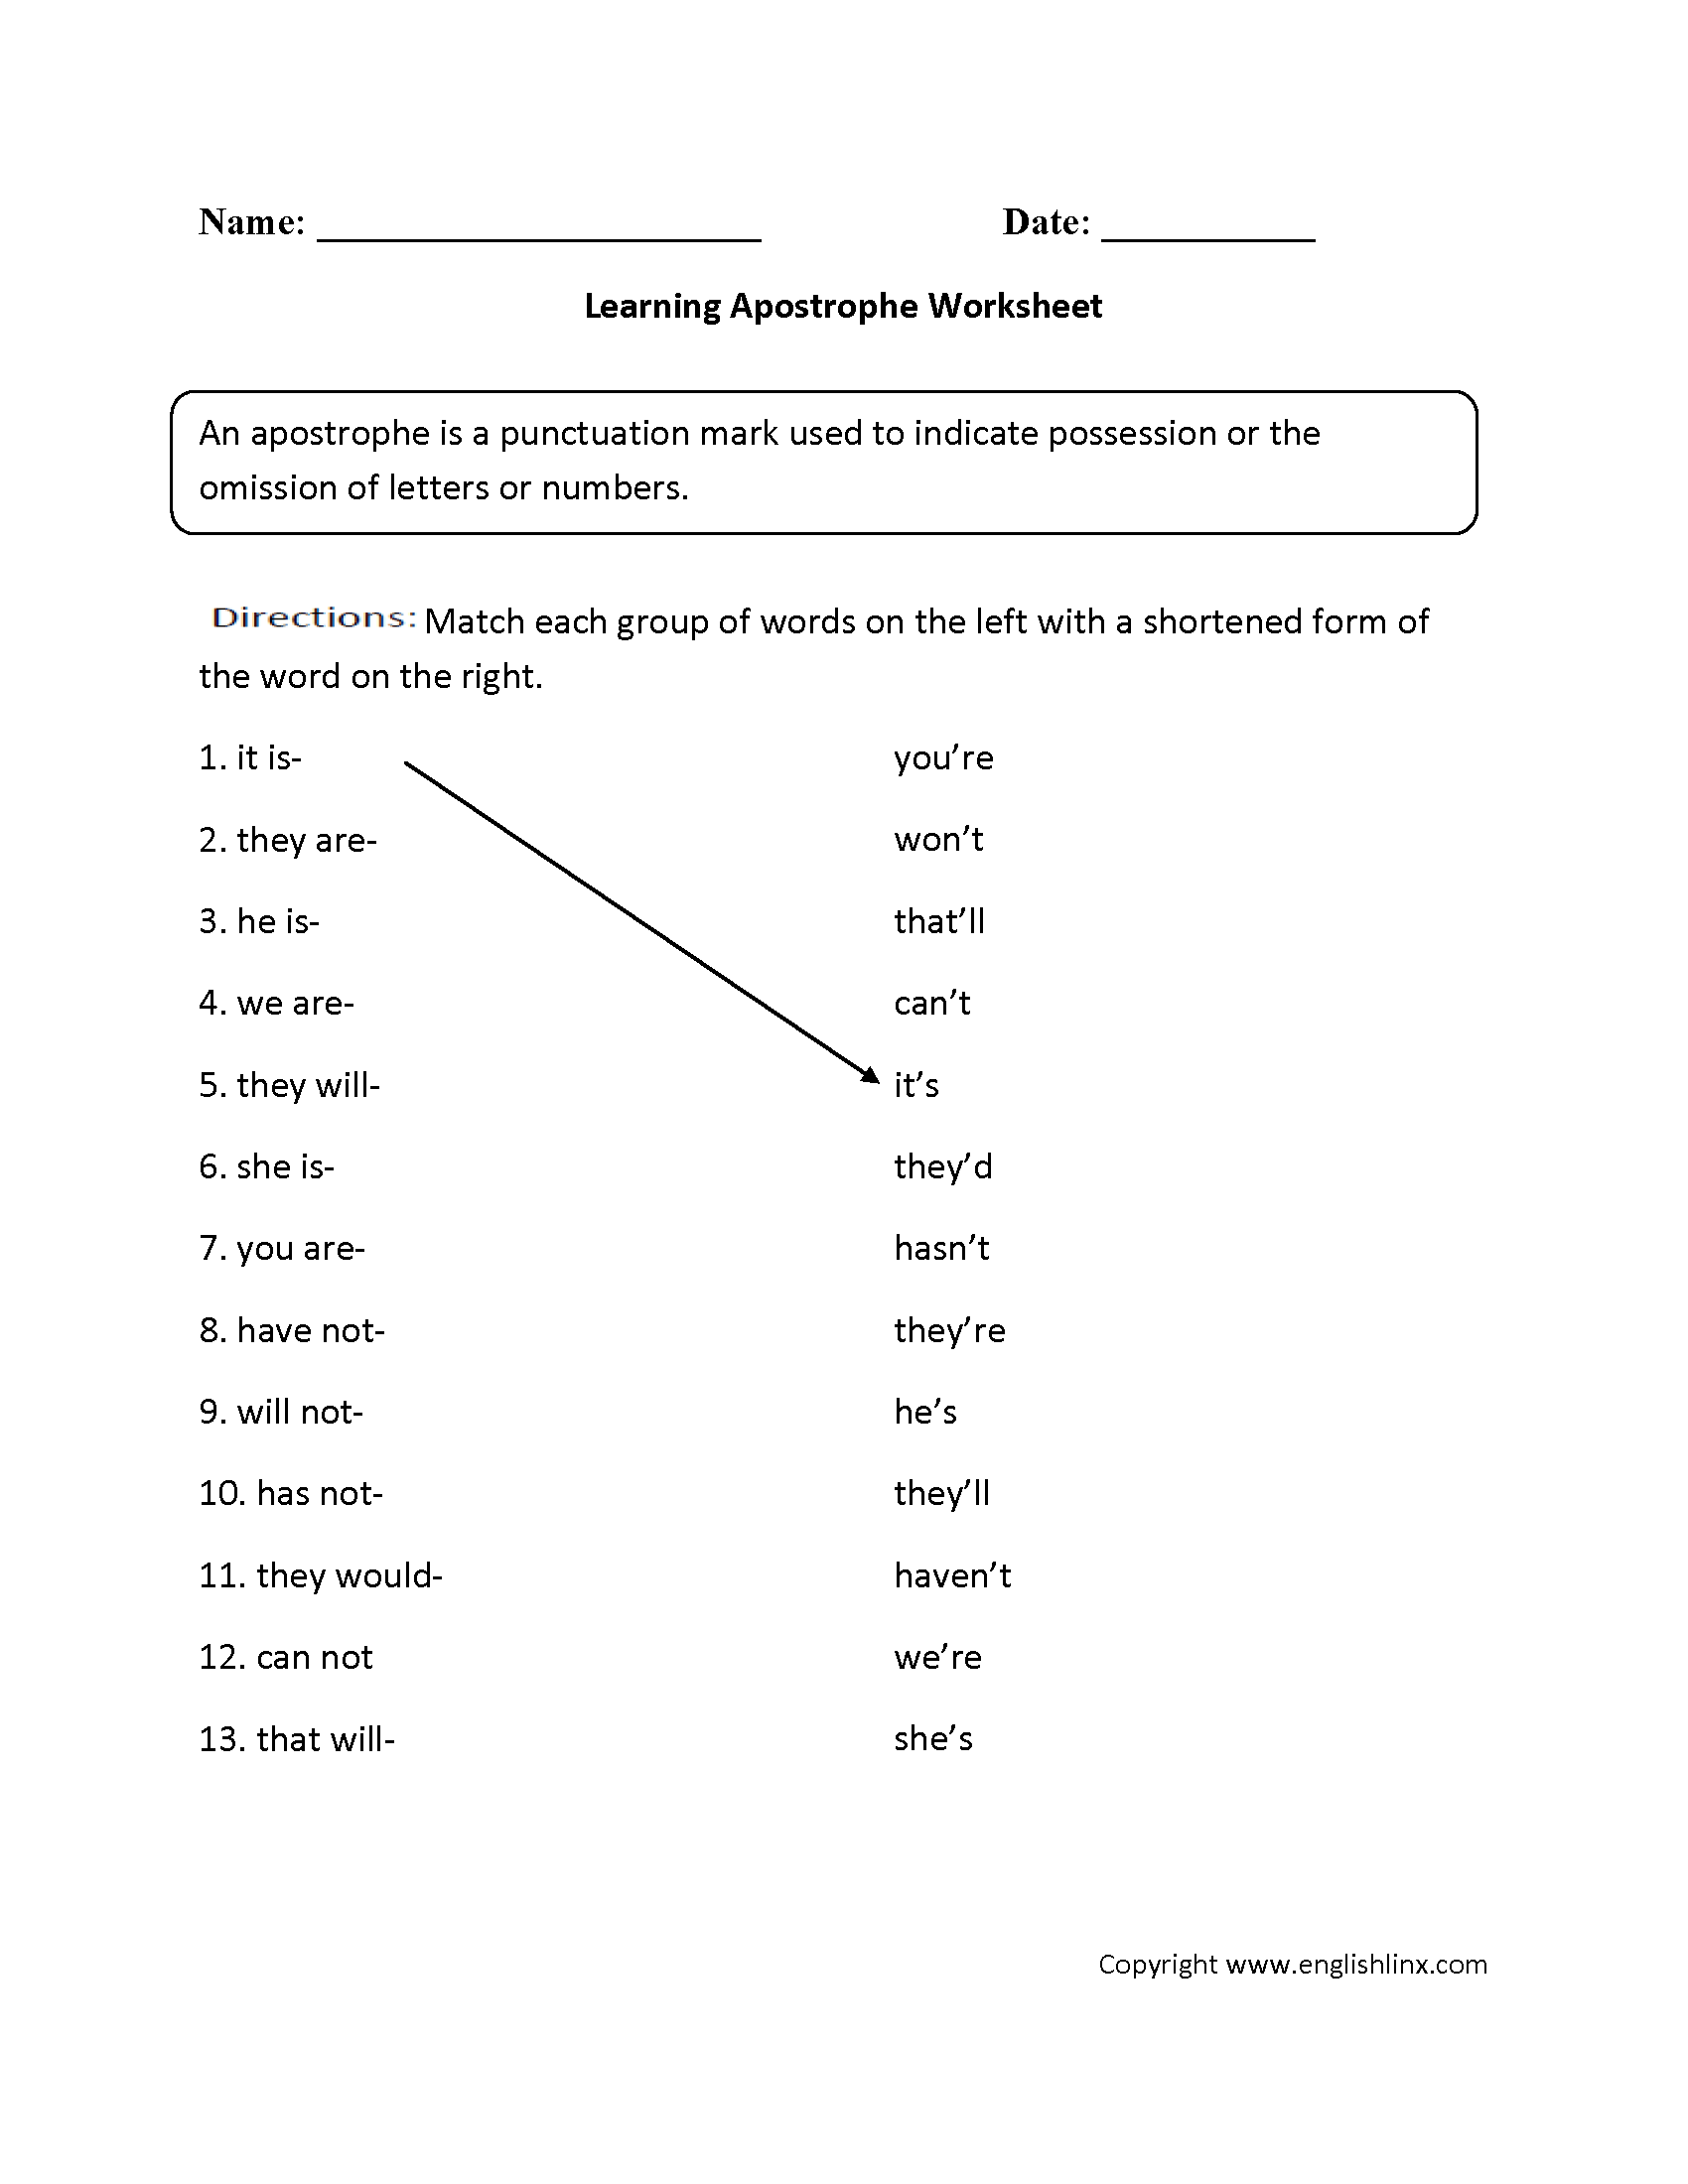 Grammar And Punctuation Worksheets For Adults